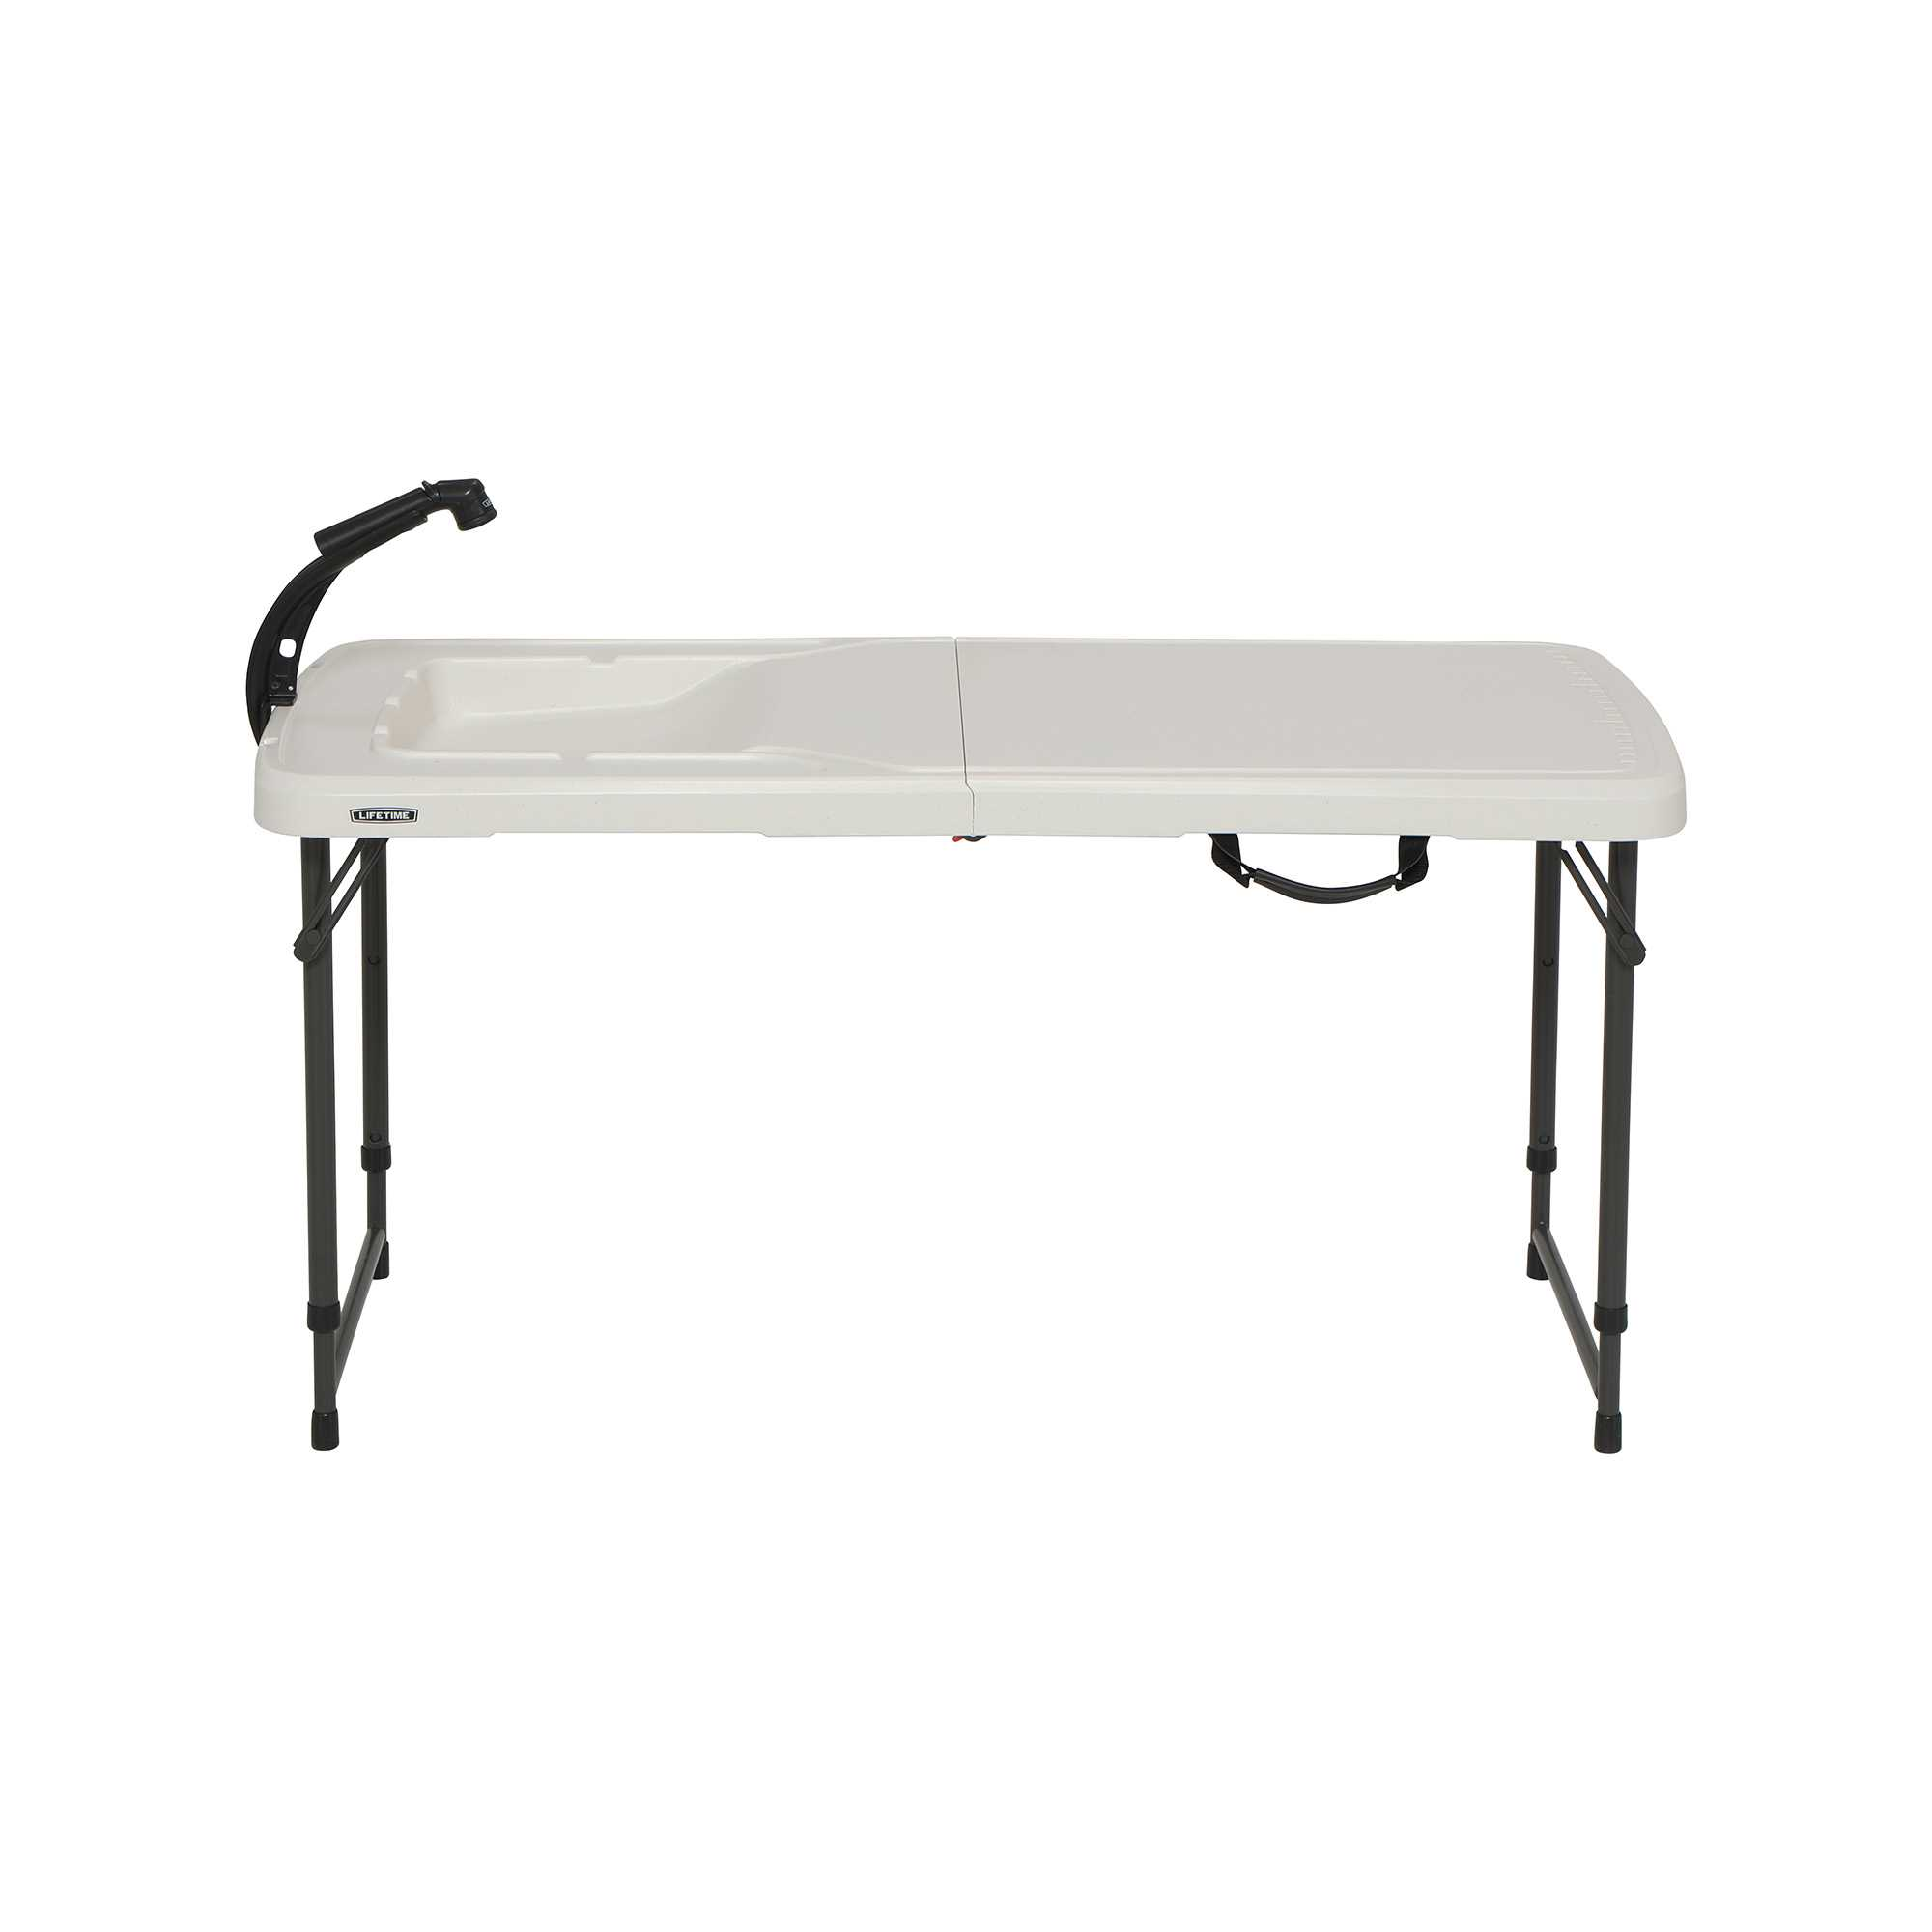 Lifetime 4-Foot Fish Cleaning Camping Table